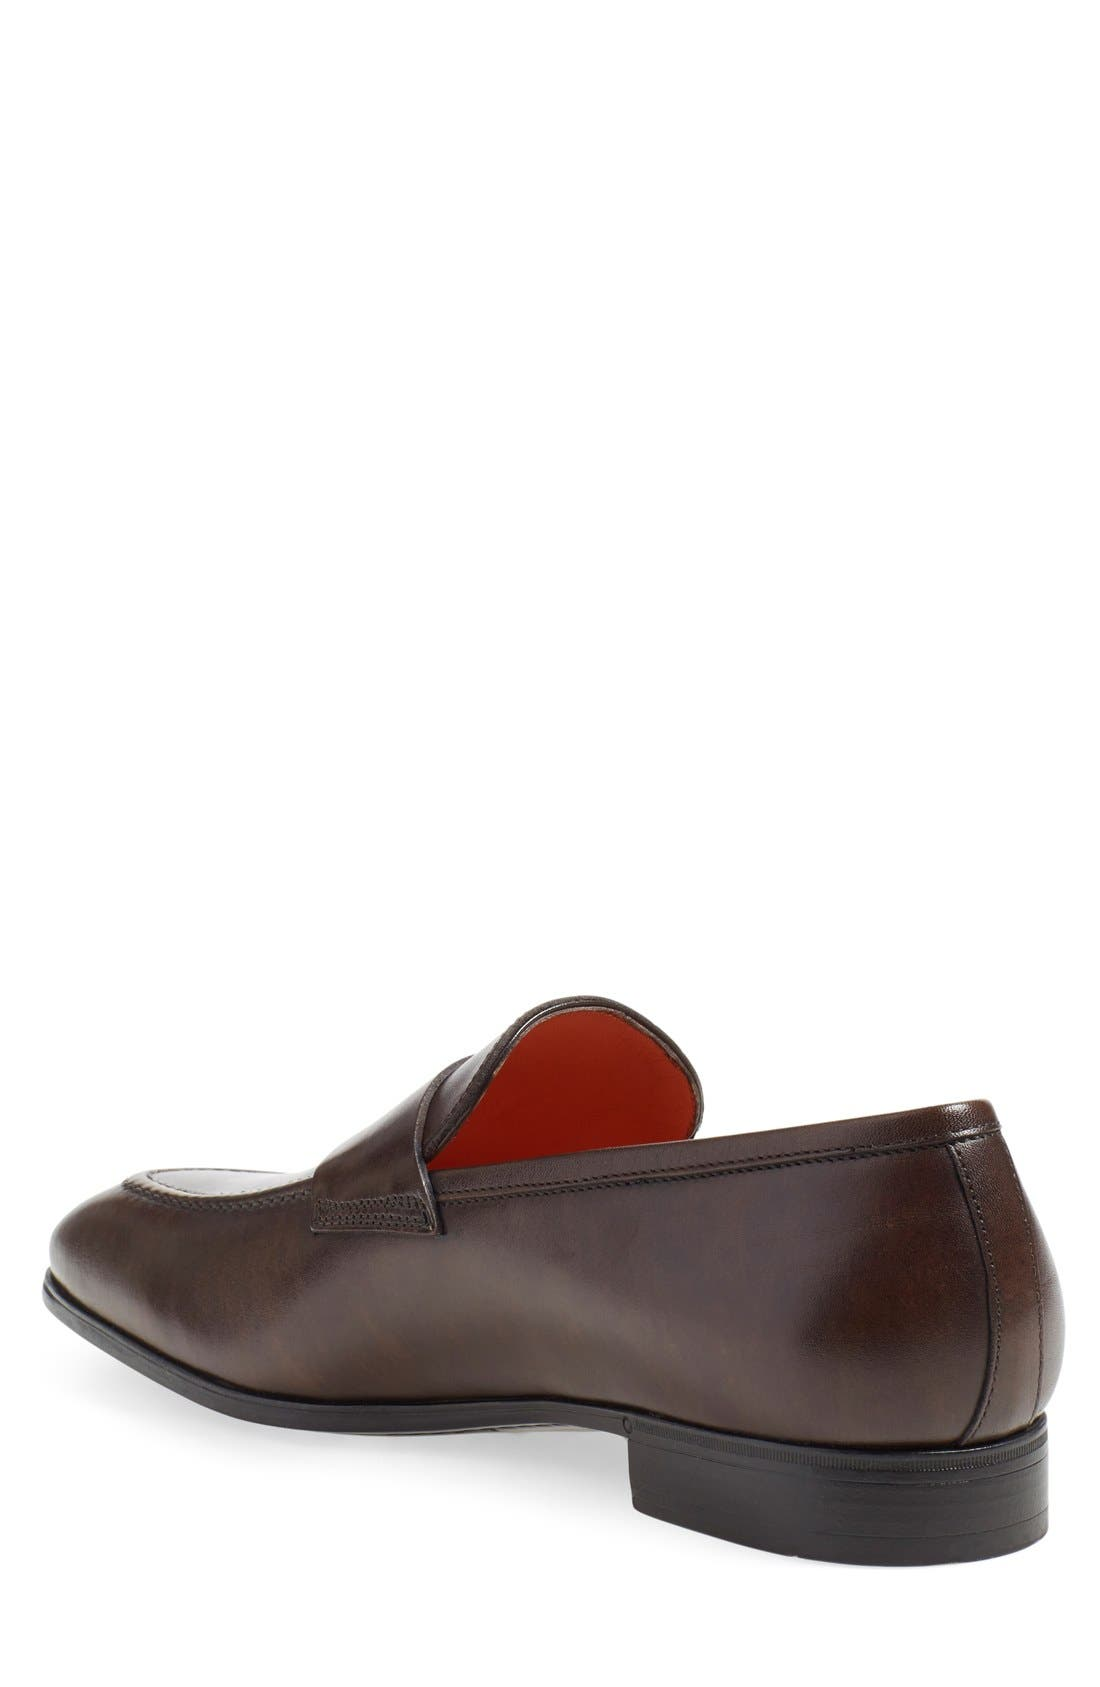 Alternate Image 2  - Santoni 'Will' Penny Loafer (Men)